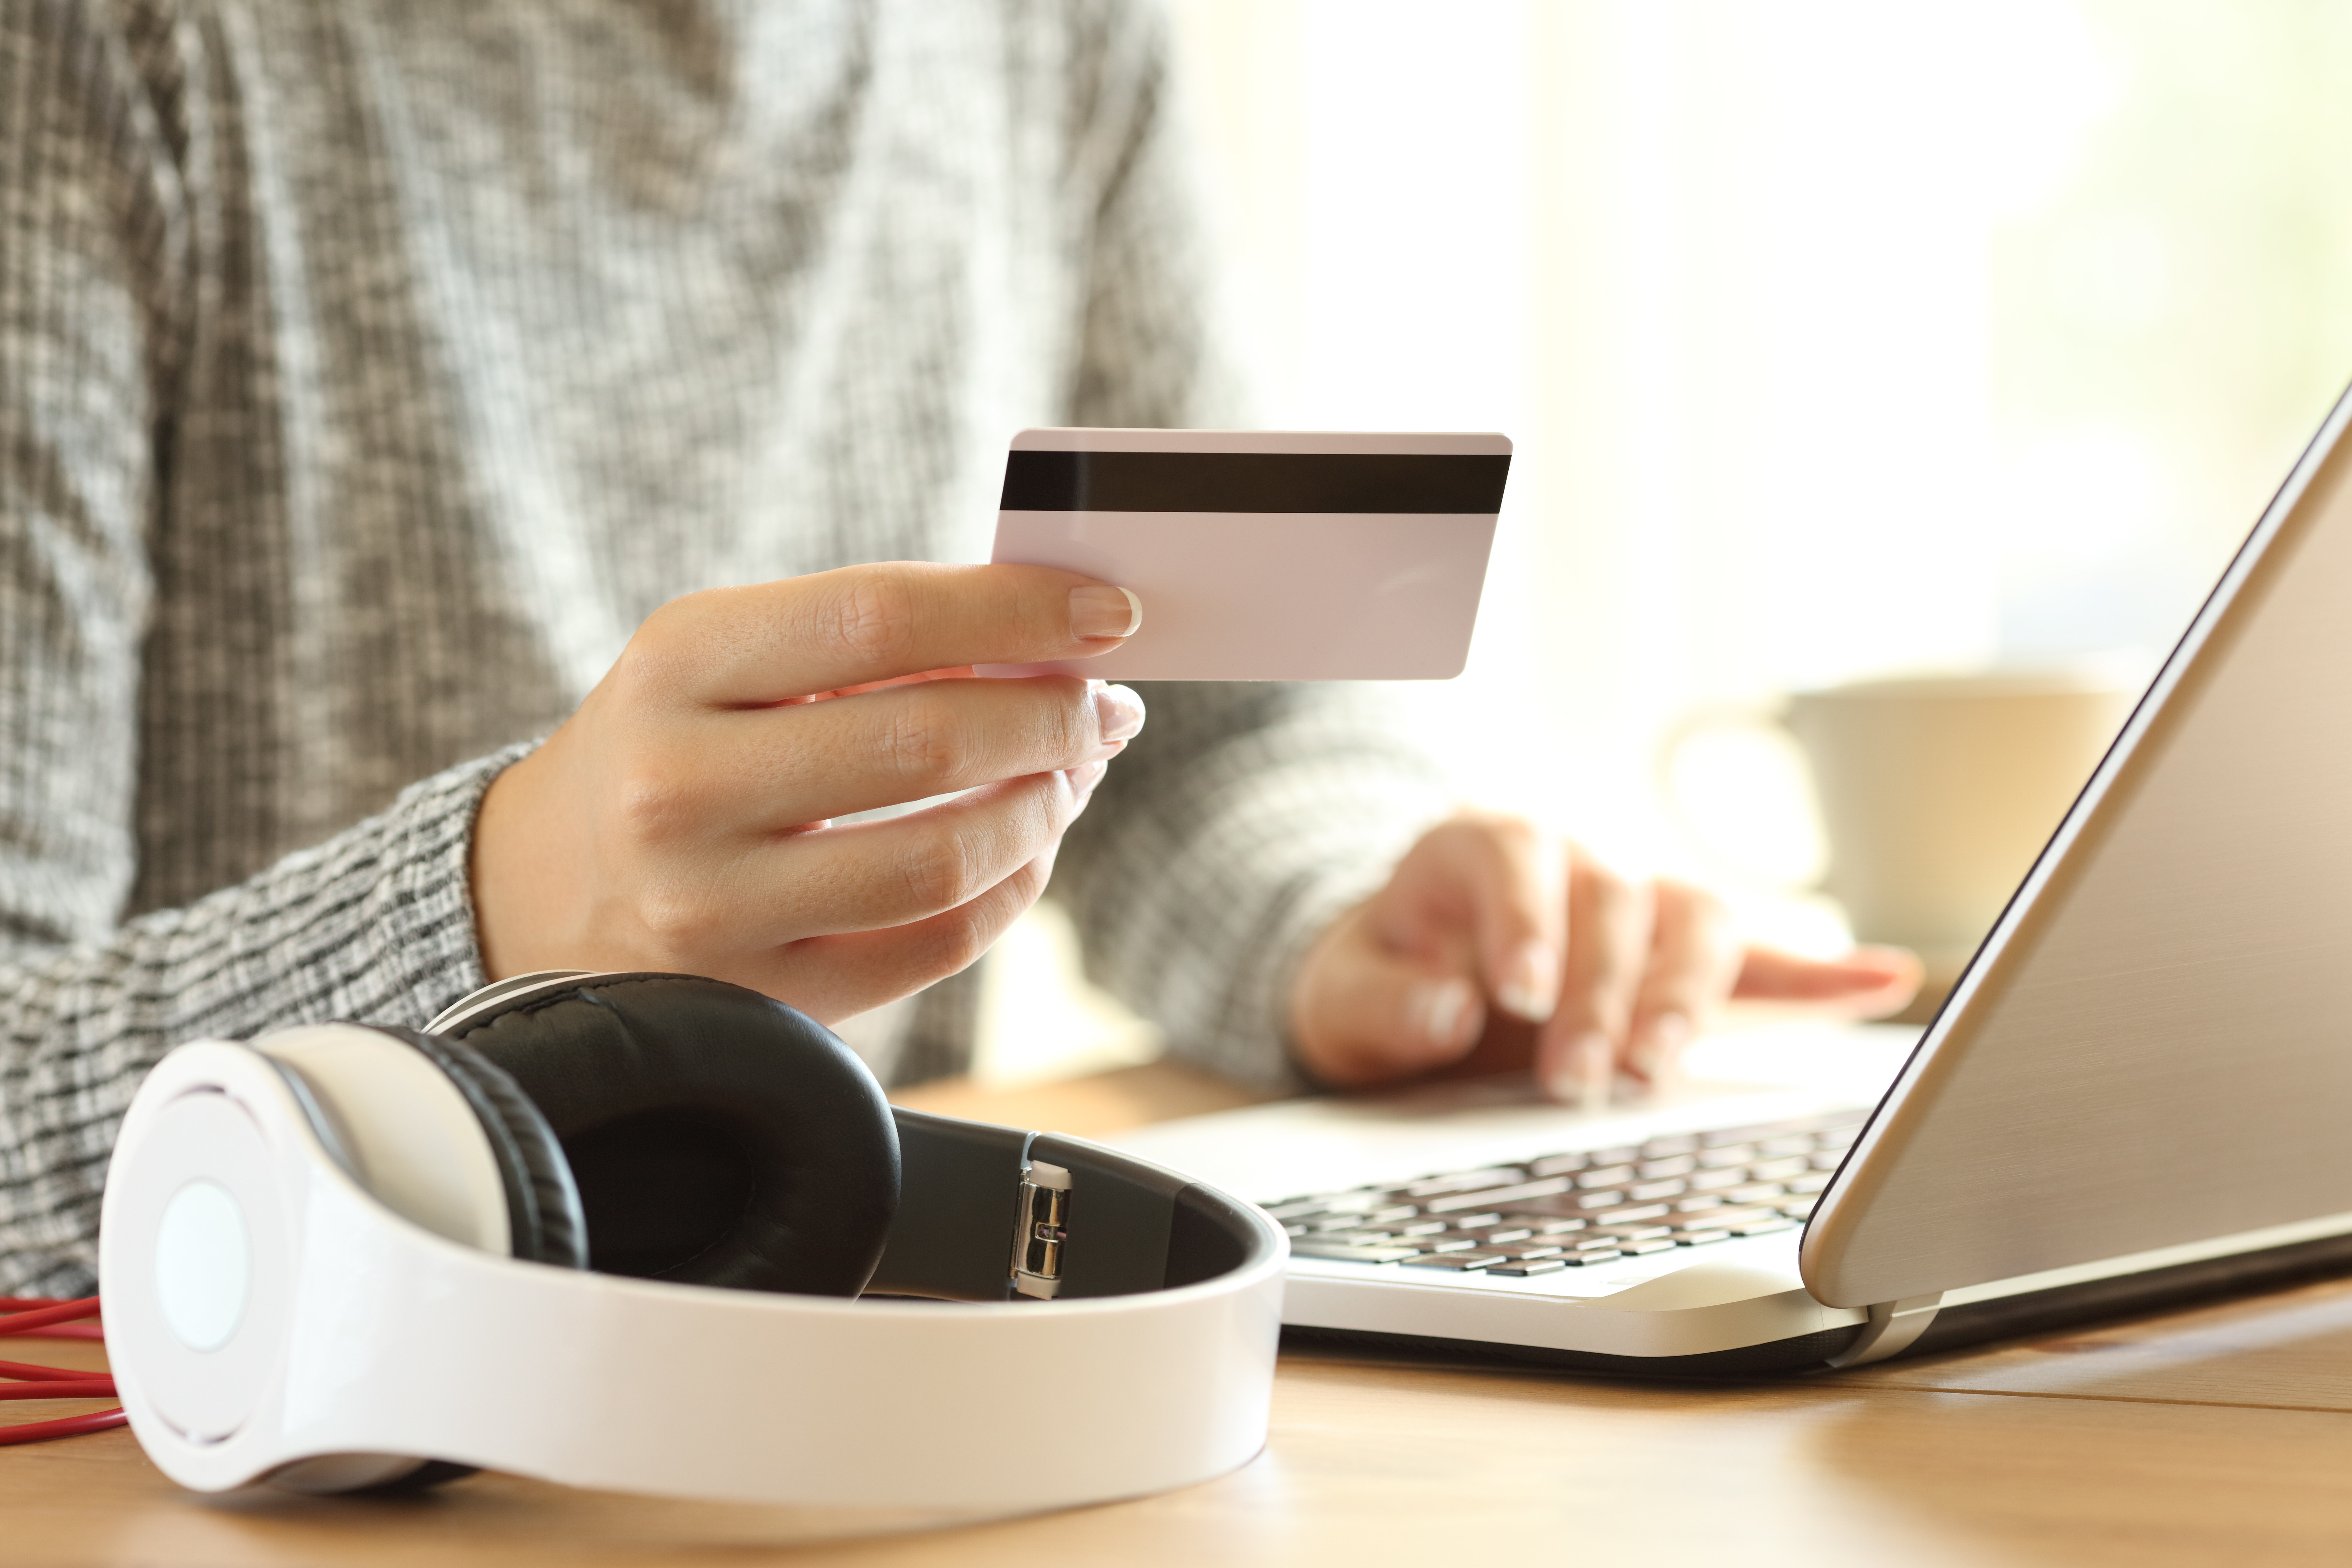 Woman making purchase on laptop with credit card next to headphones